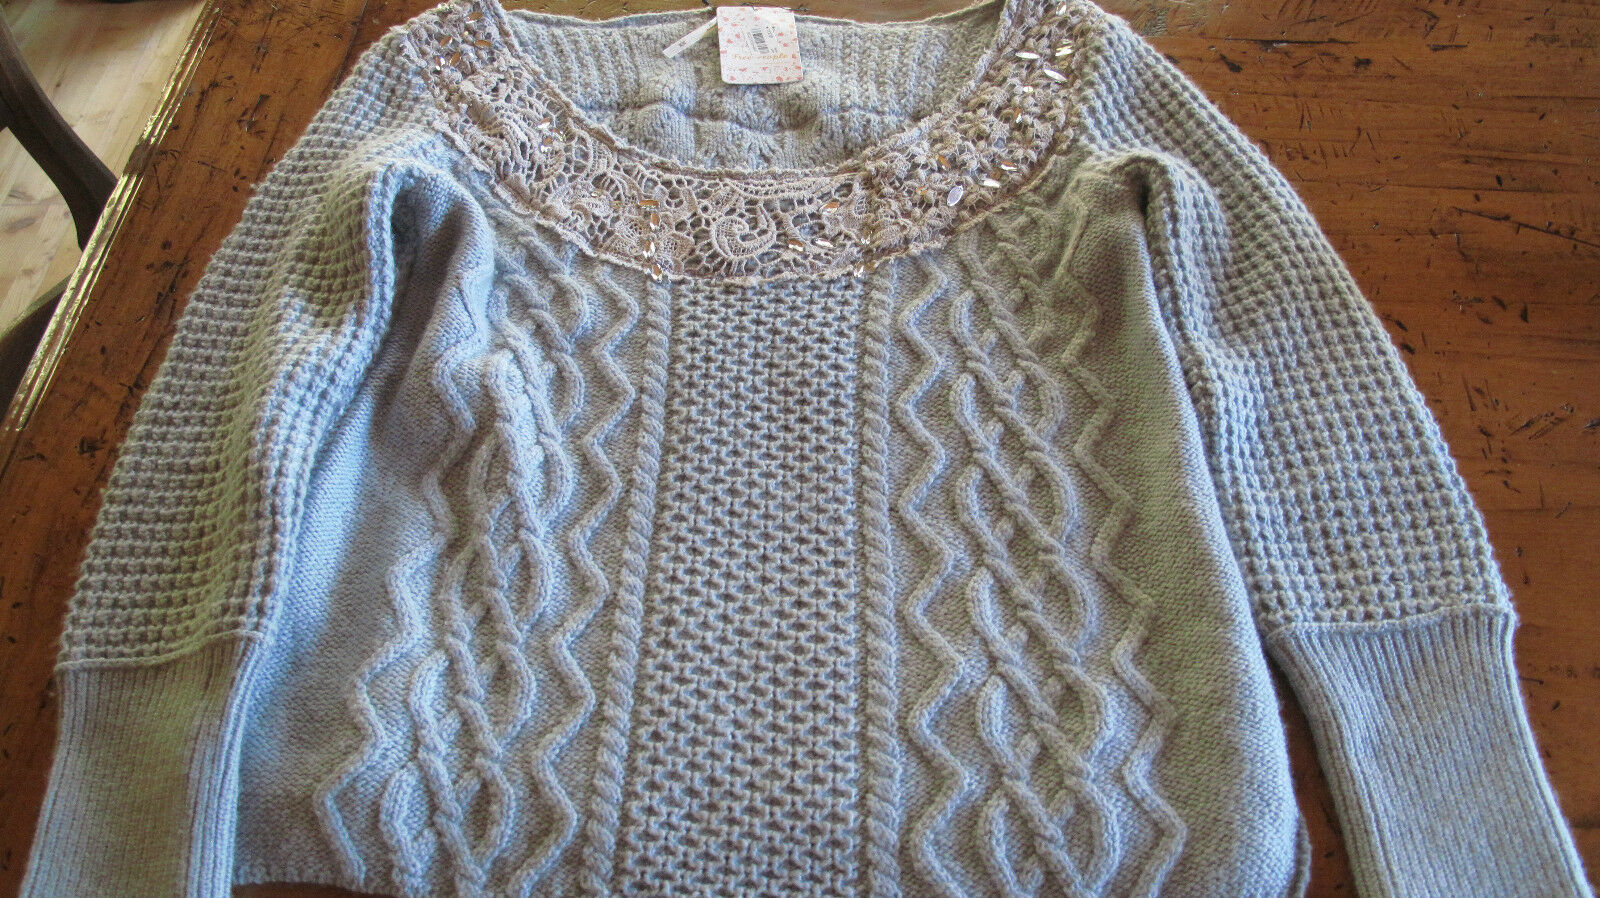 FREE PEOPLE New  Aurora  Rhinestone sequin 2 bluee sweaters Size M